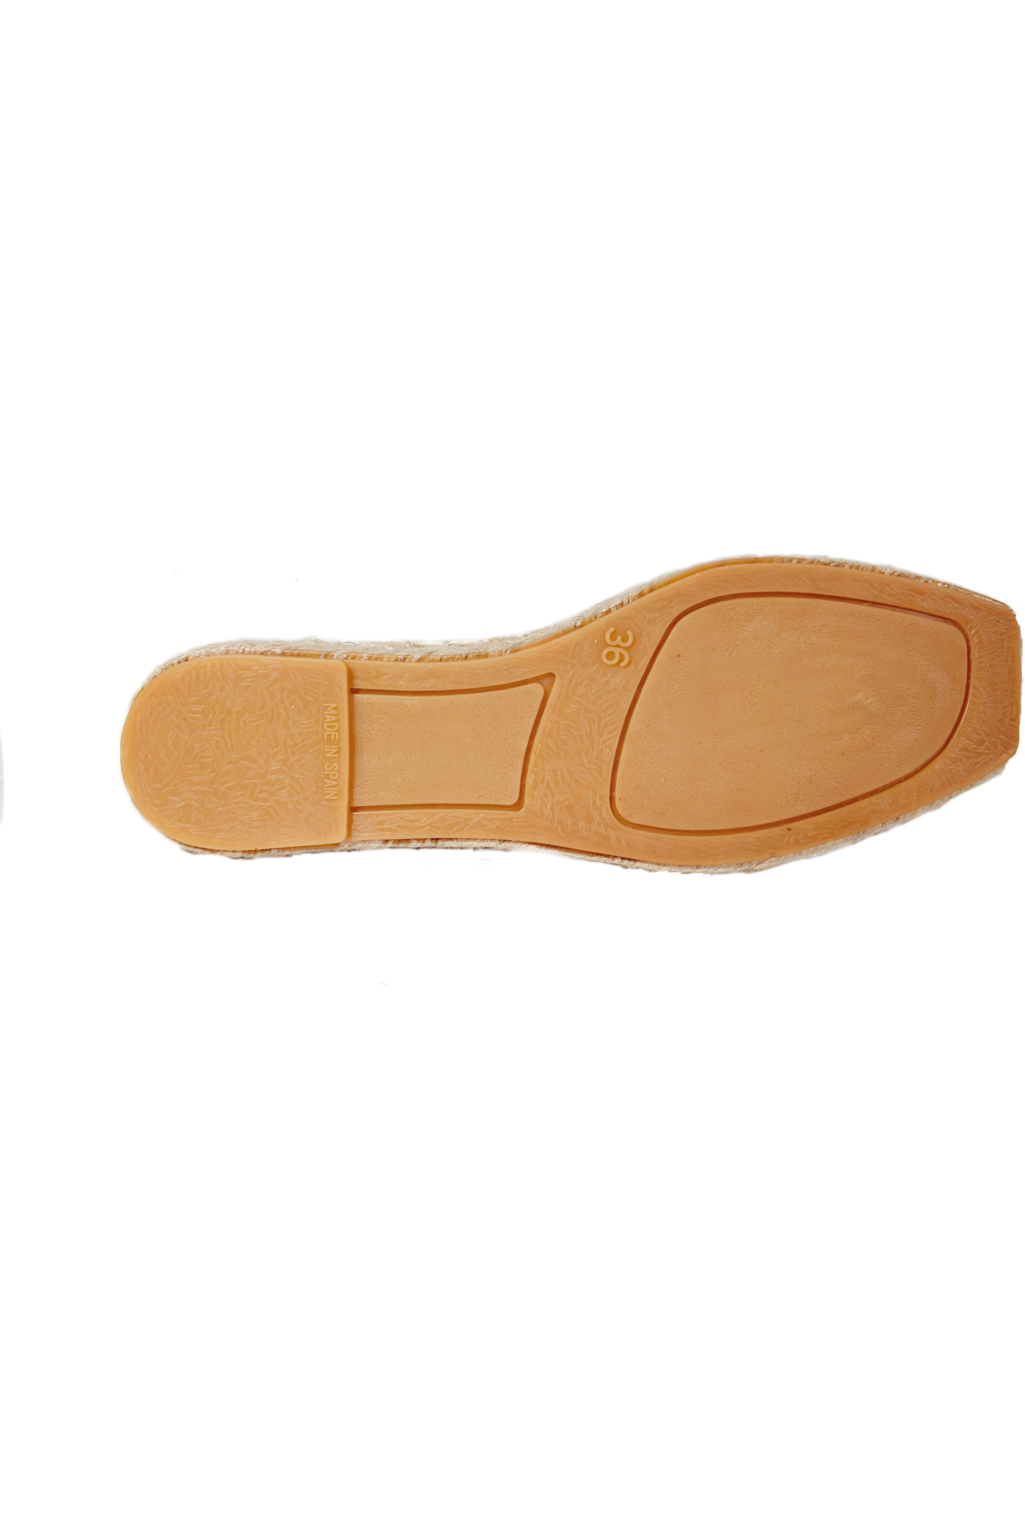 Renee Espadrille Orange Espadrilles - Hausofassembly